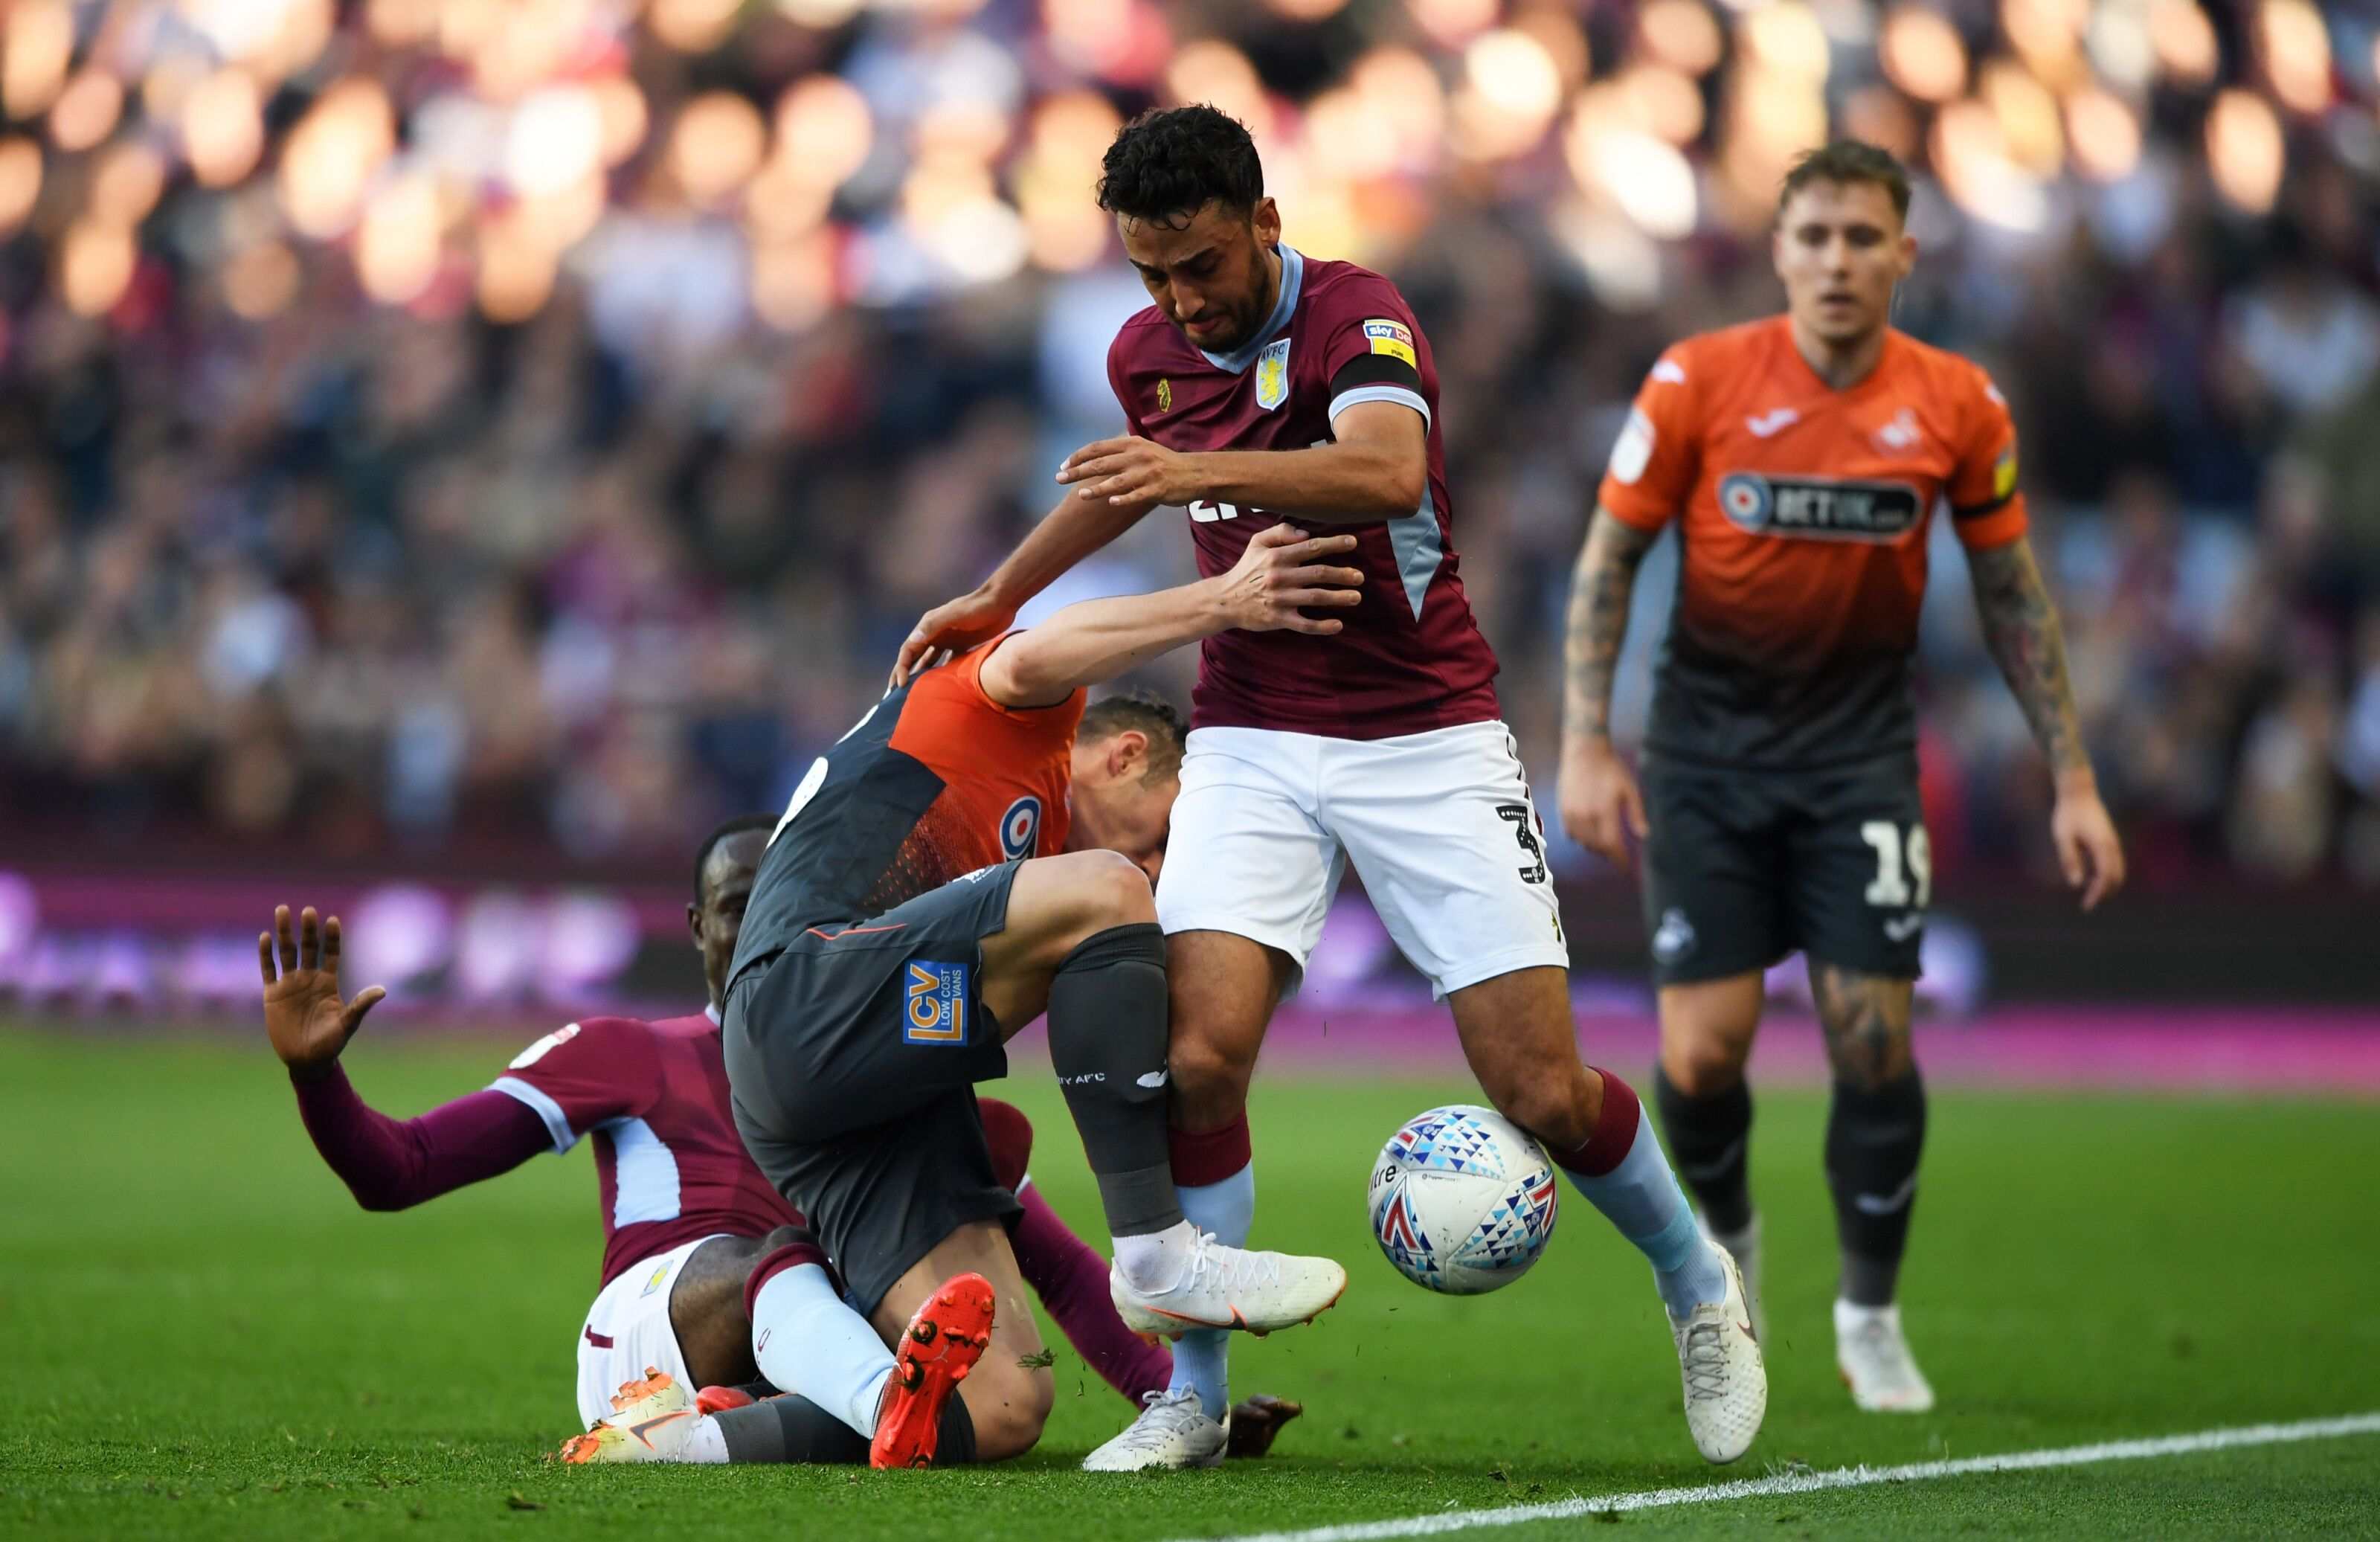 Villans Abroad: Aston Villa players feature during busy international window